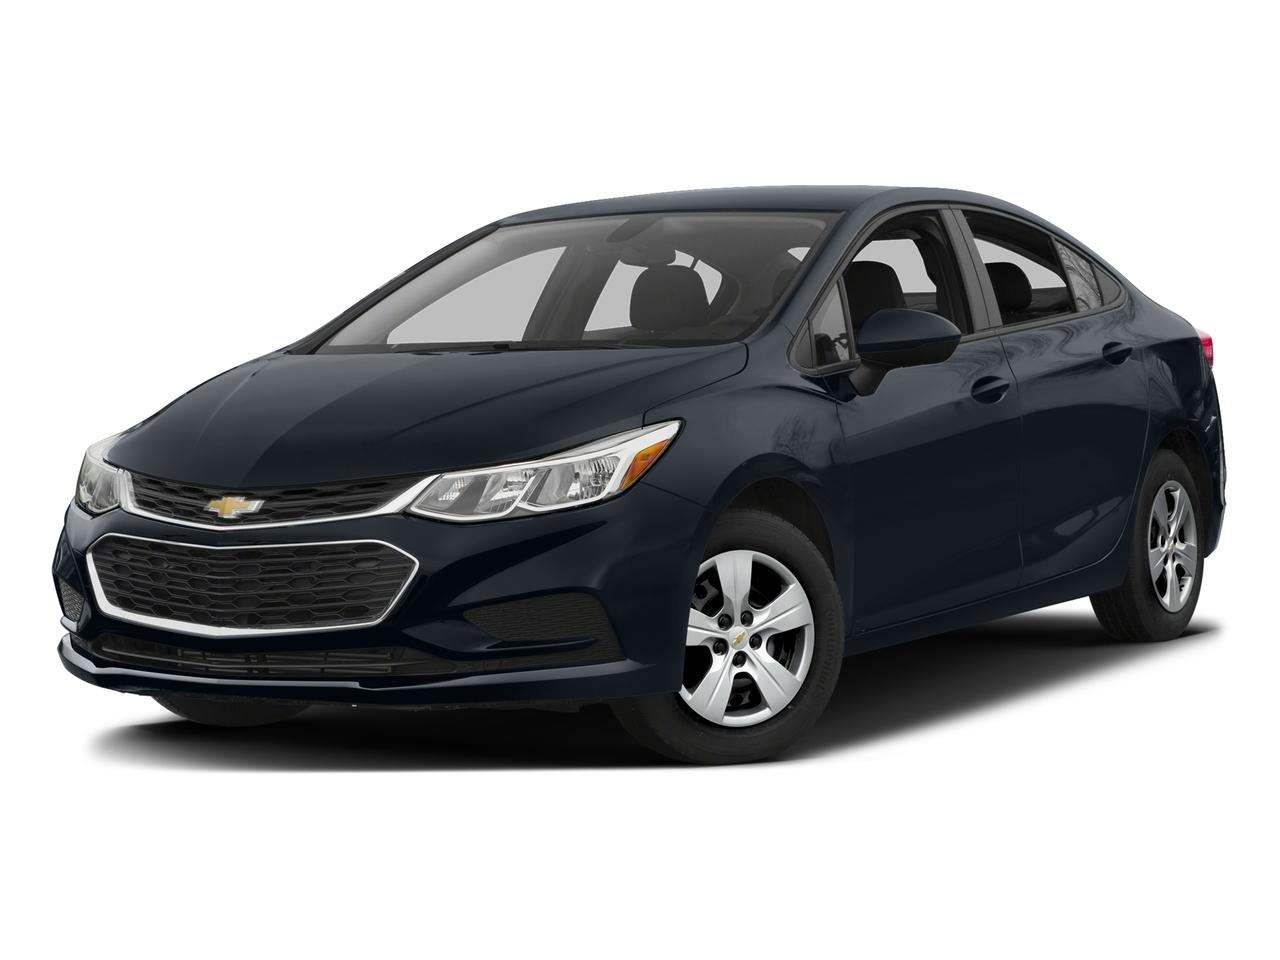 2016 Chevrolet Cruze Vehicle Photo in Odessa, TX 79762